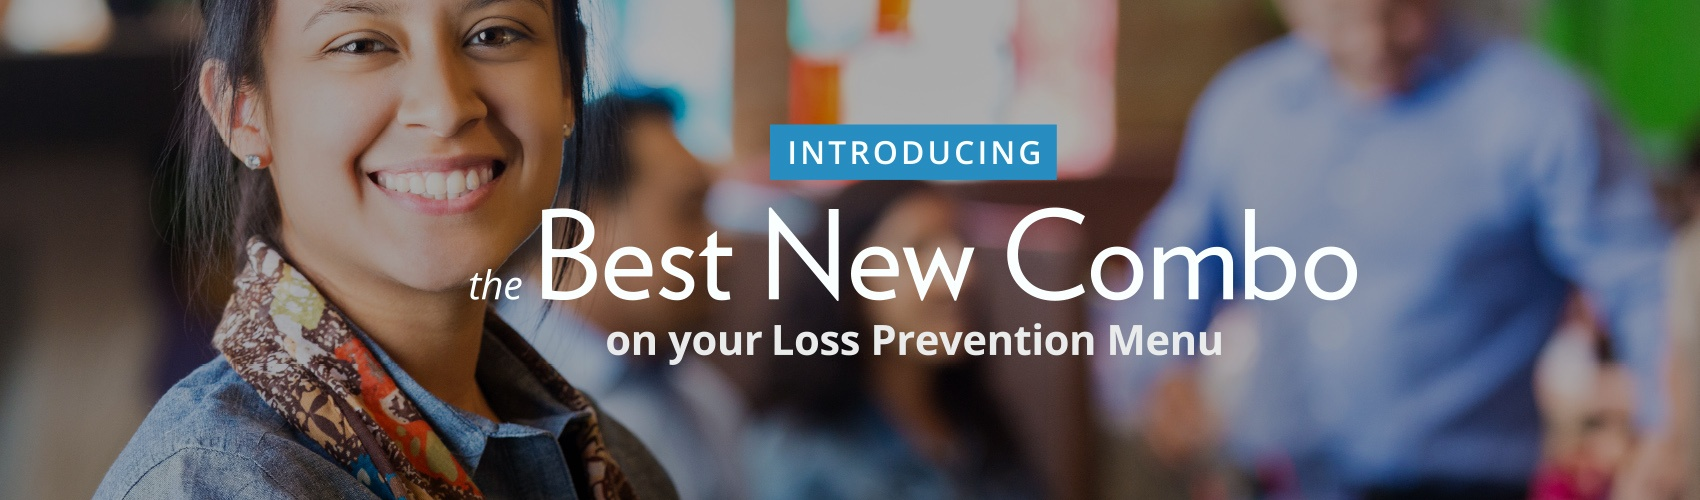 Introducing the best new combo on your loss prevention menu